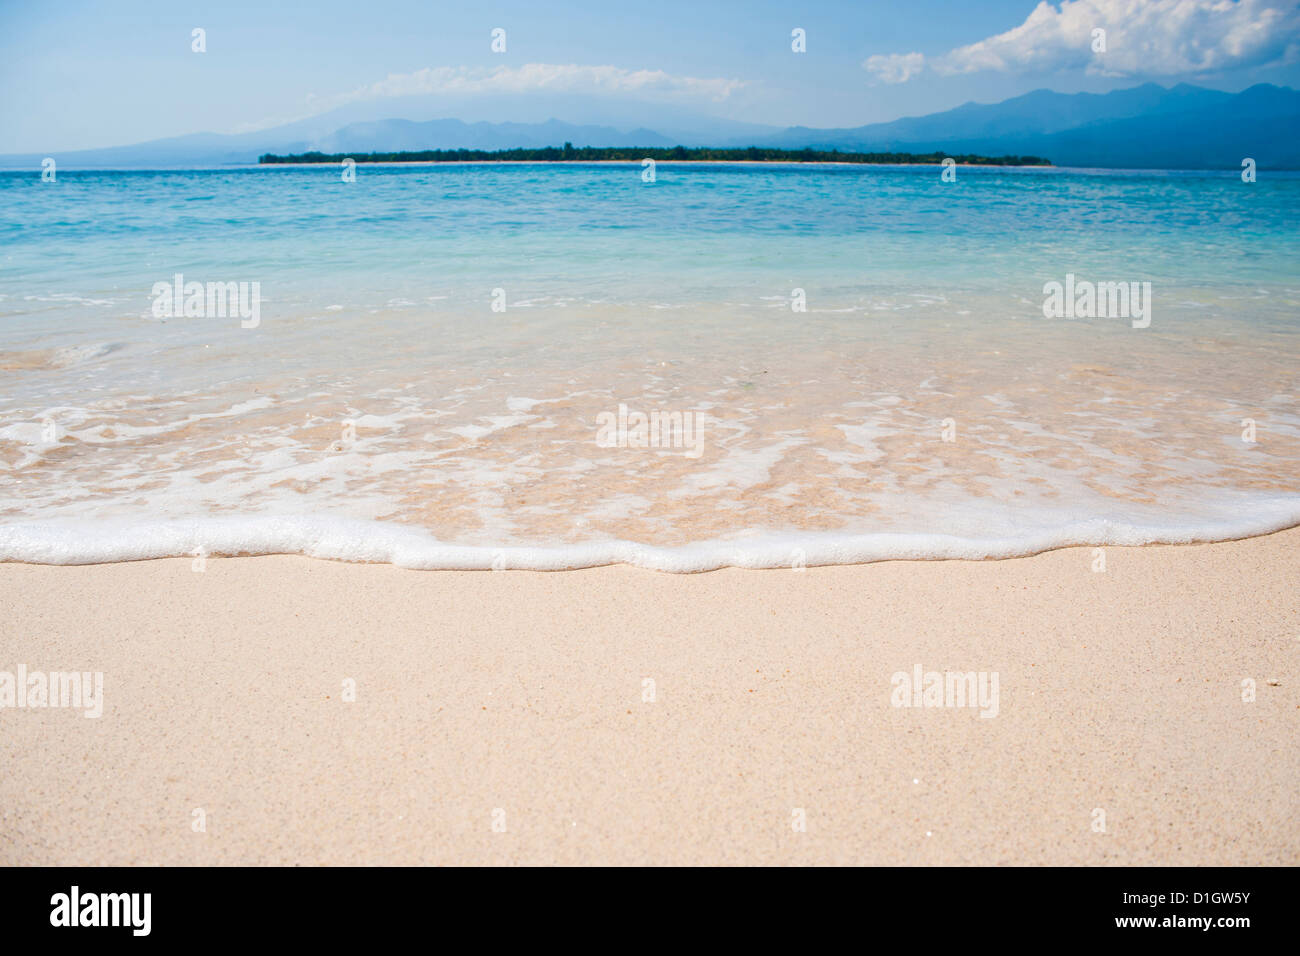 The tropical island of Gili Air, with Gili Meno beach in the foreground, Gili Isles, Indonesia, Southeast Asia, - Stock Image